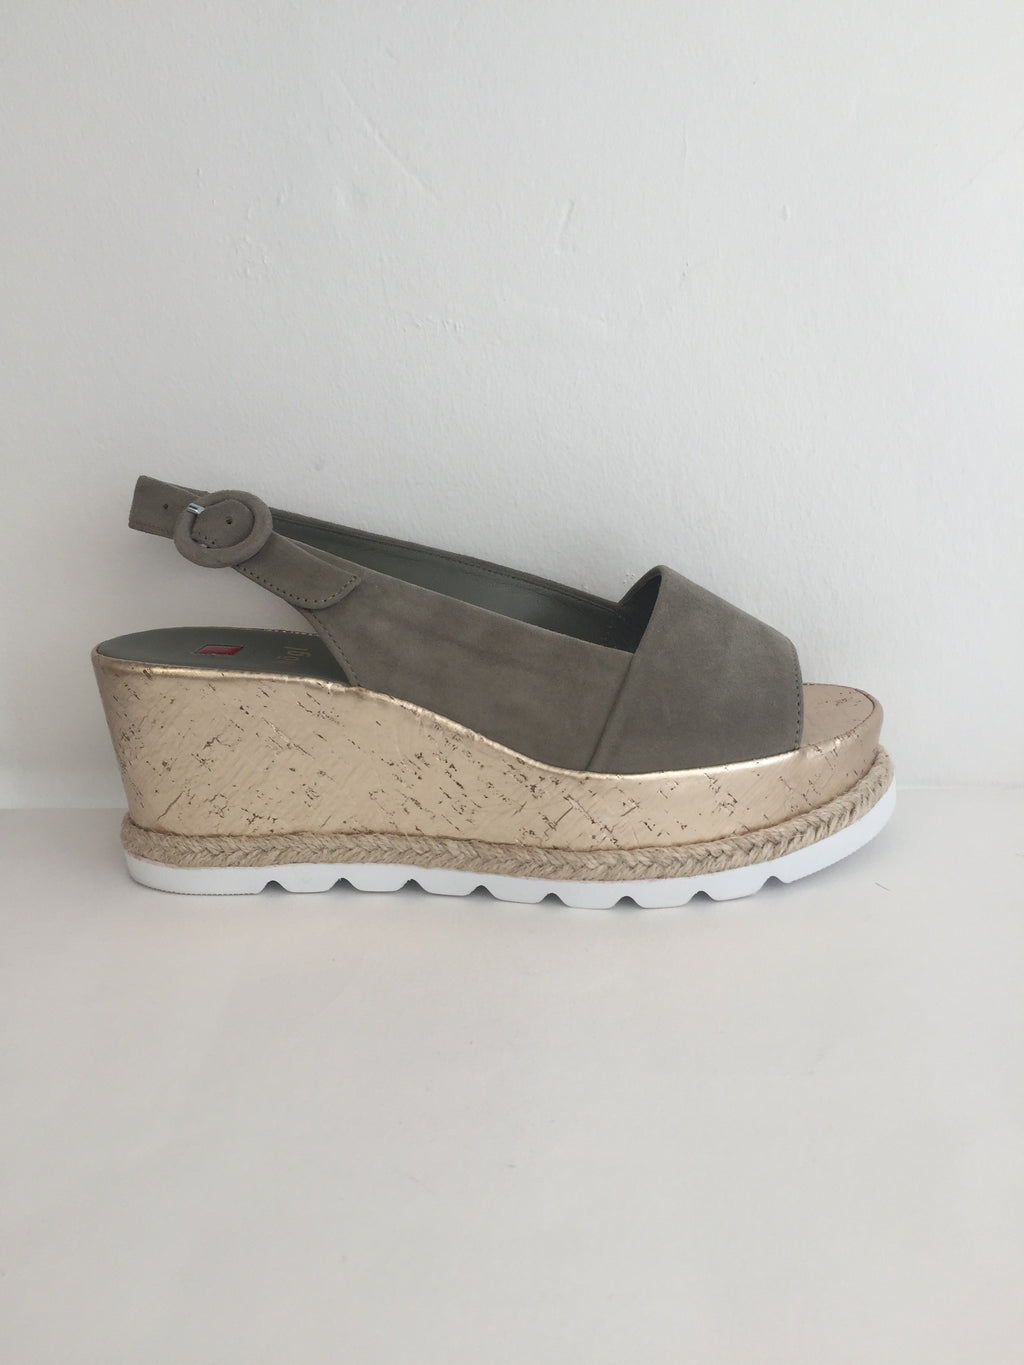 Högl Olive Green Wedge Sandal